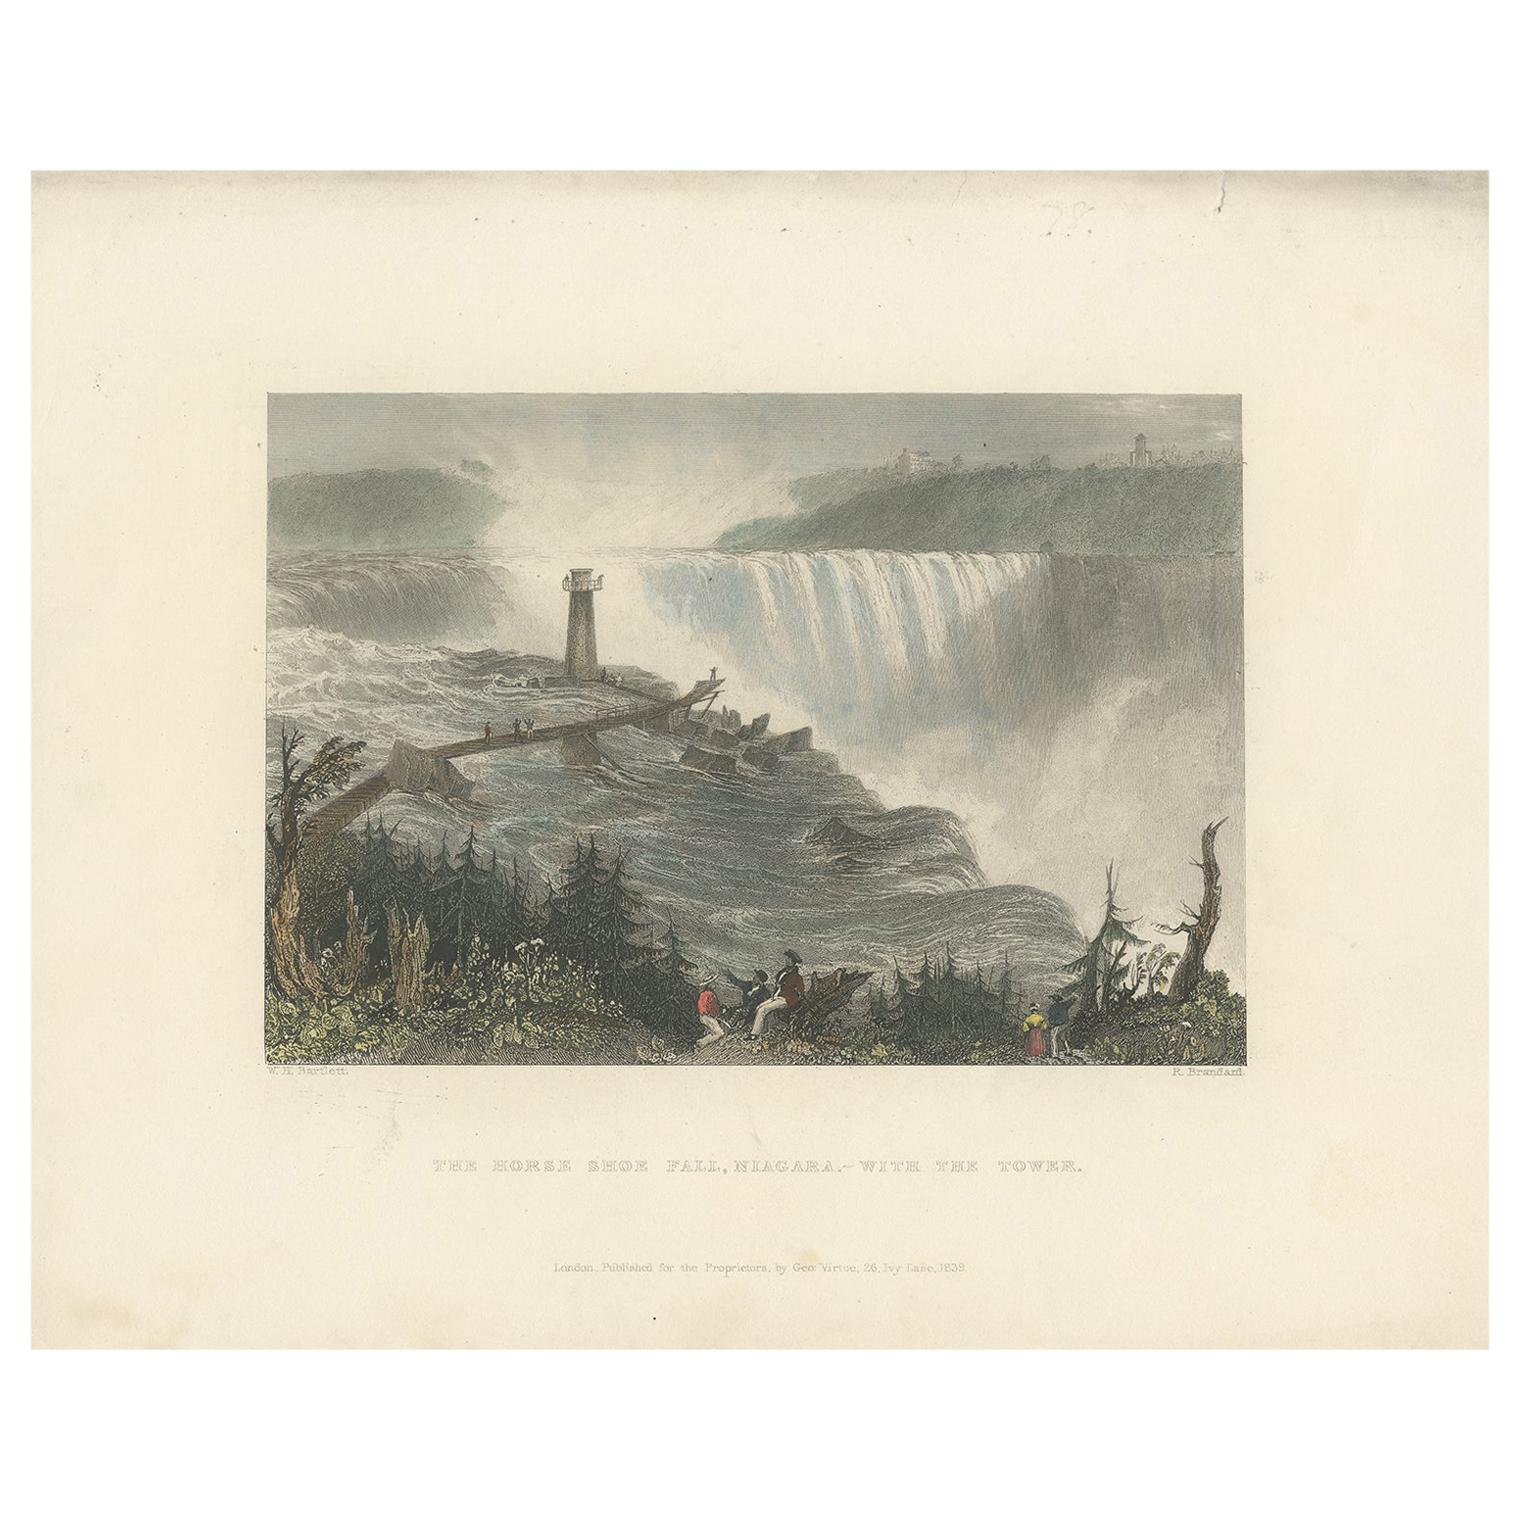 Antique Print of the Rapids of the Horseshoe falls by Brandard, 1839